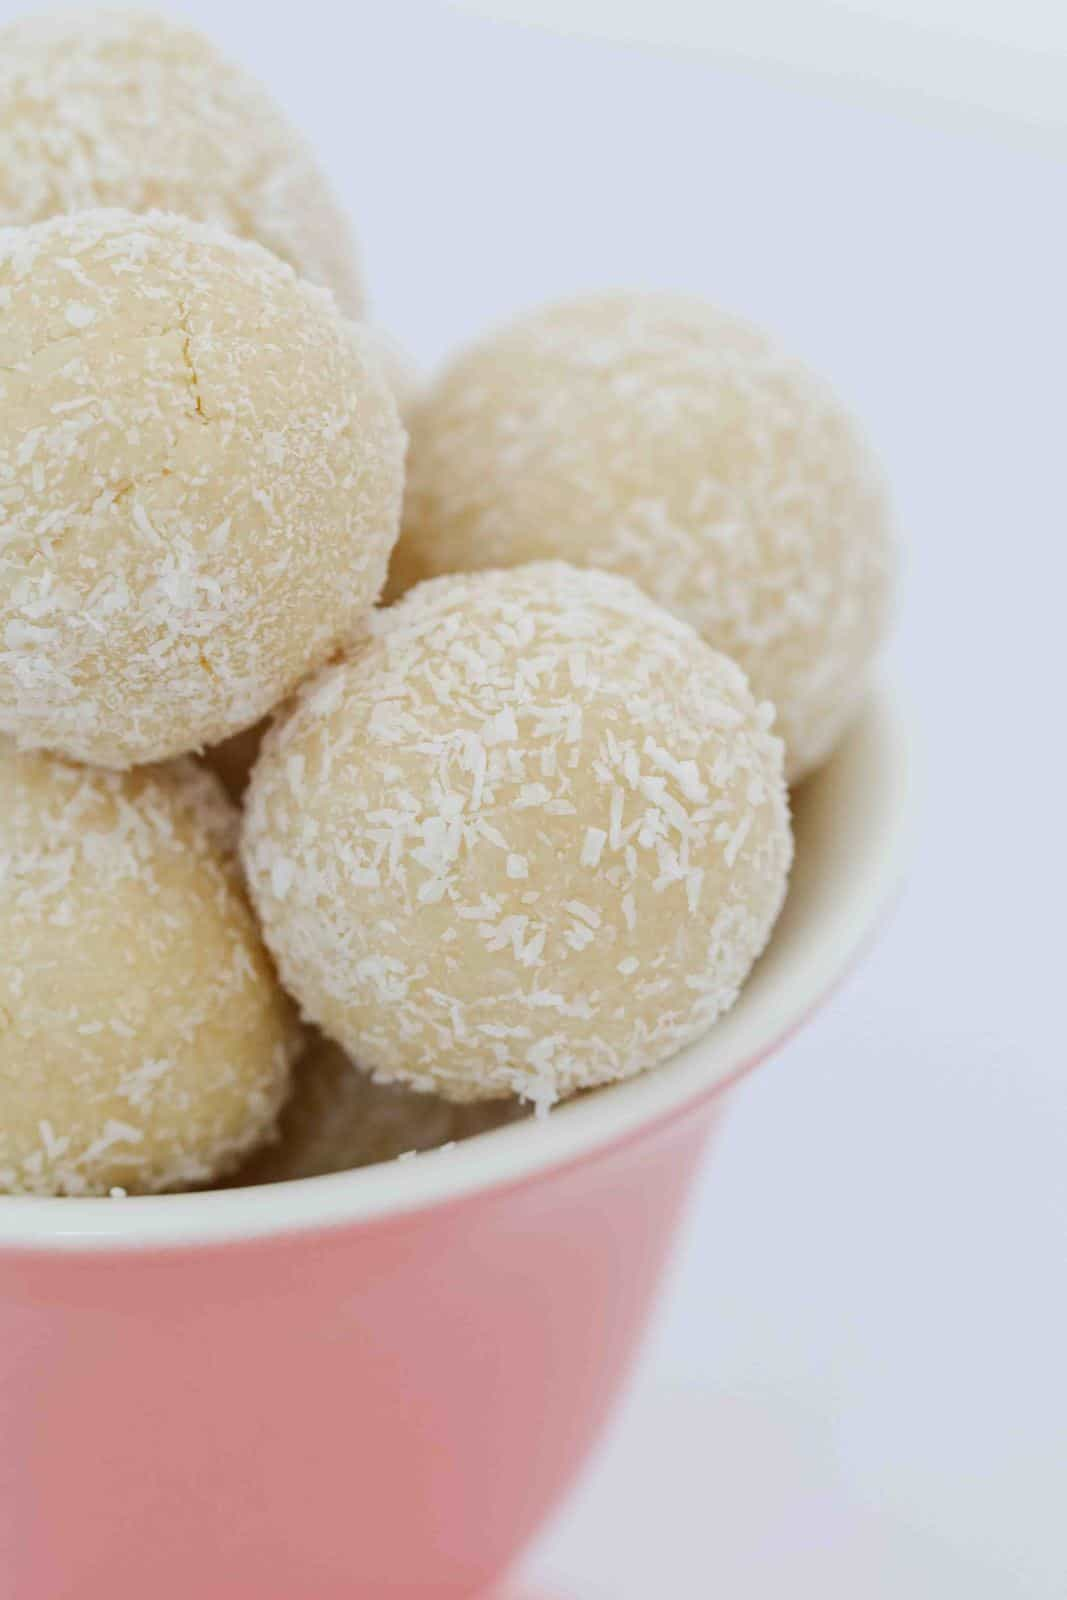 White chocolate balls covered in coconut.